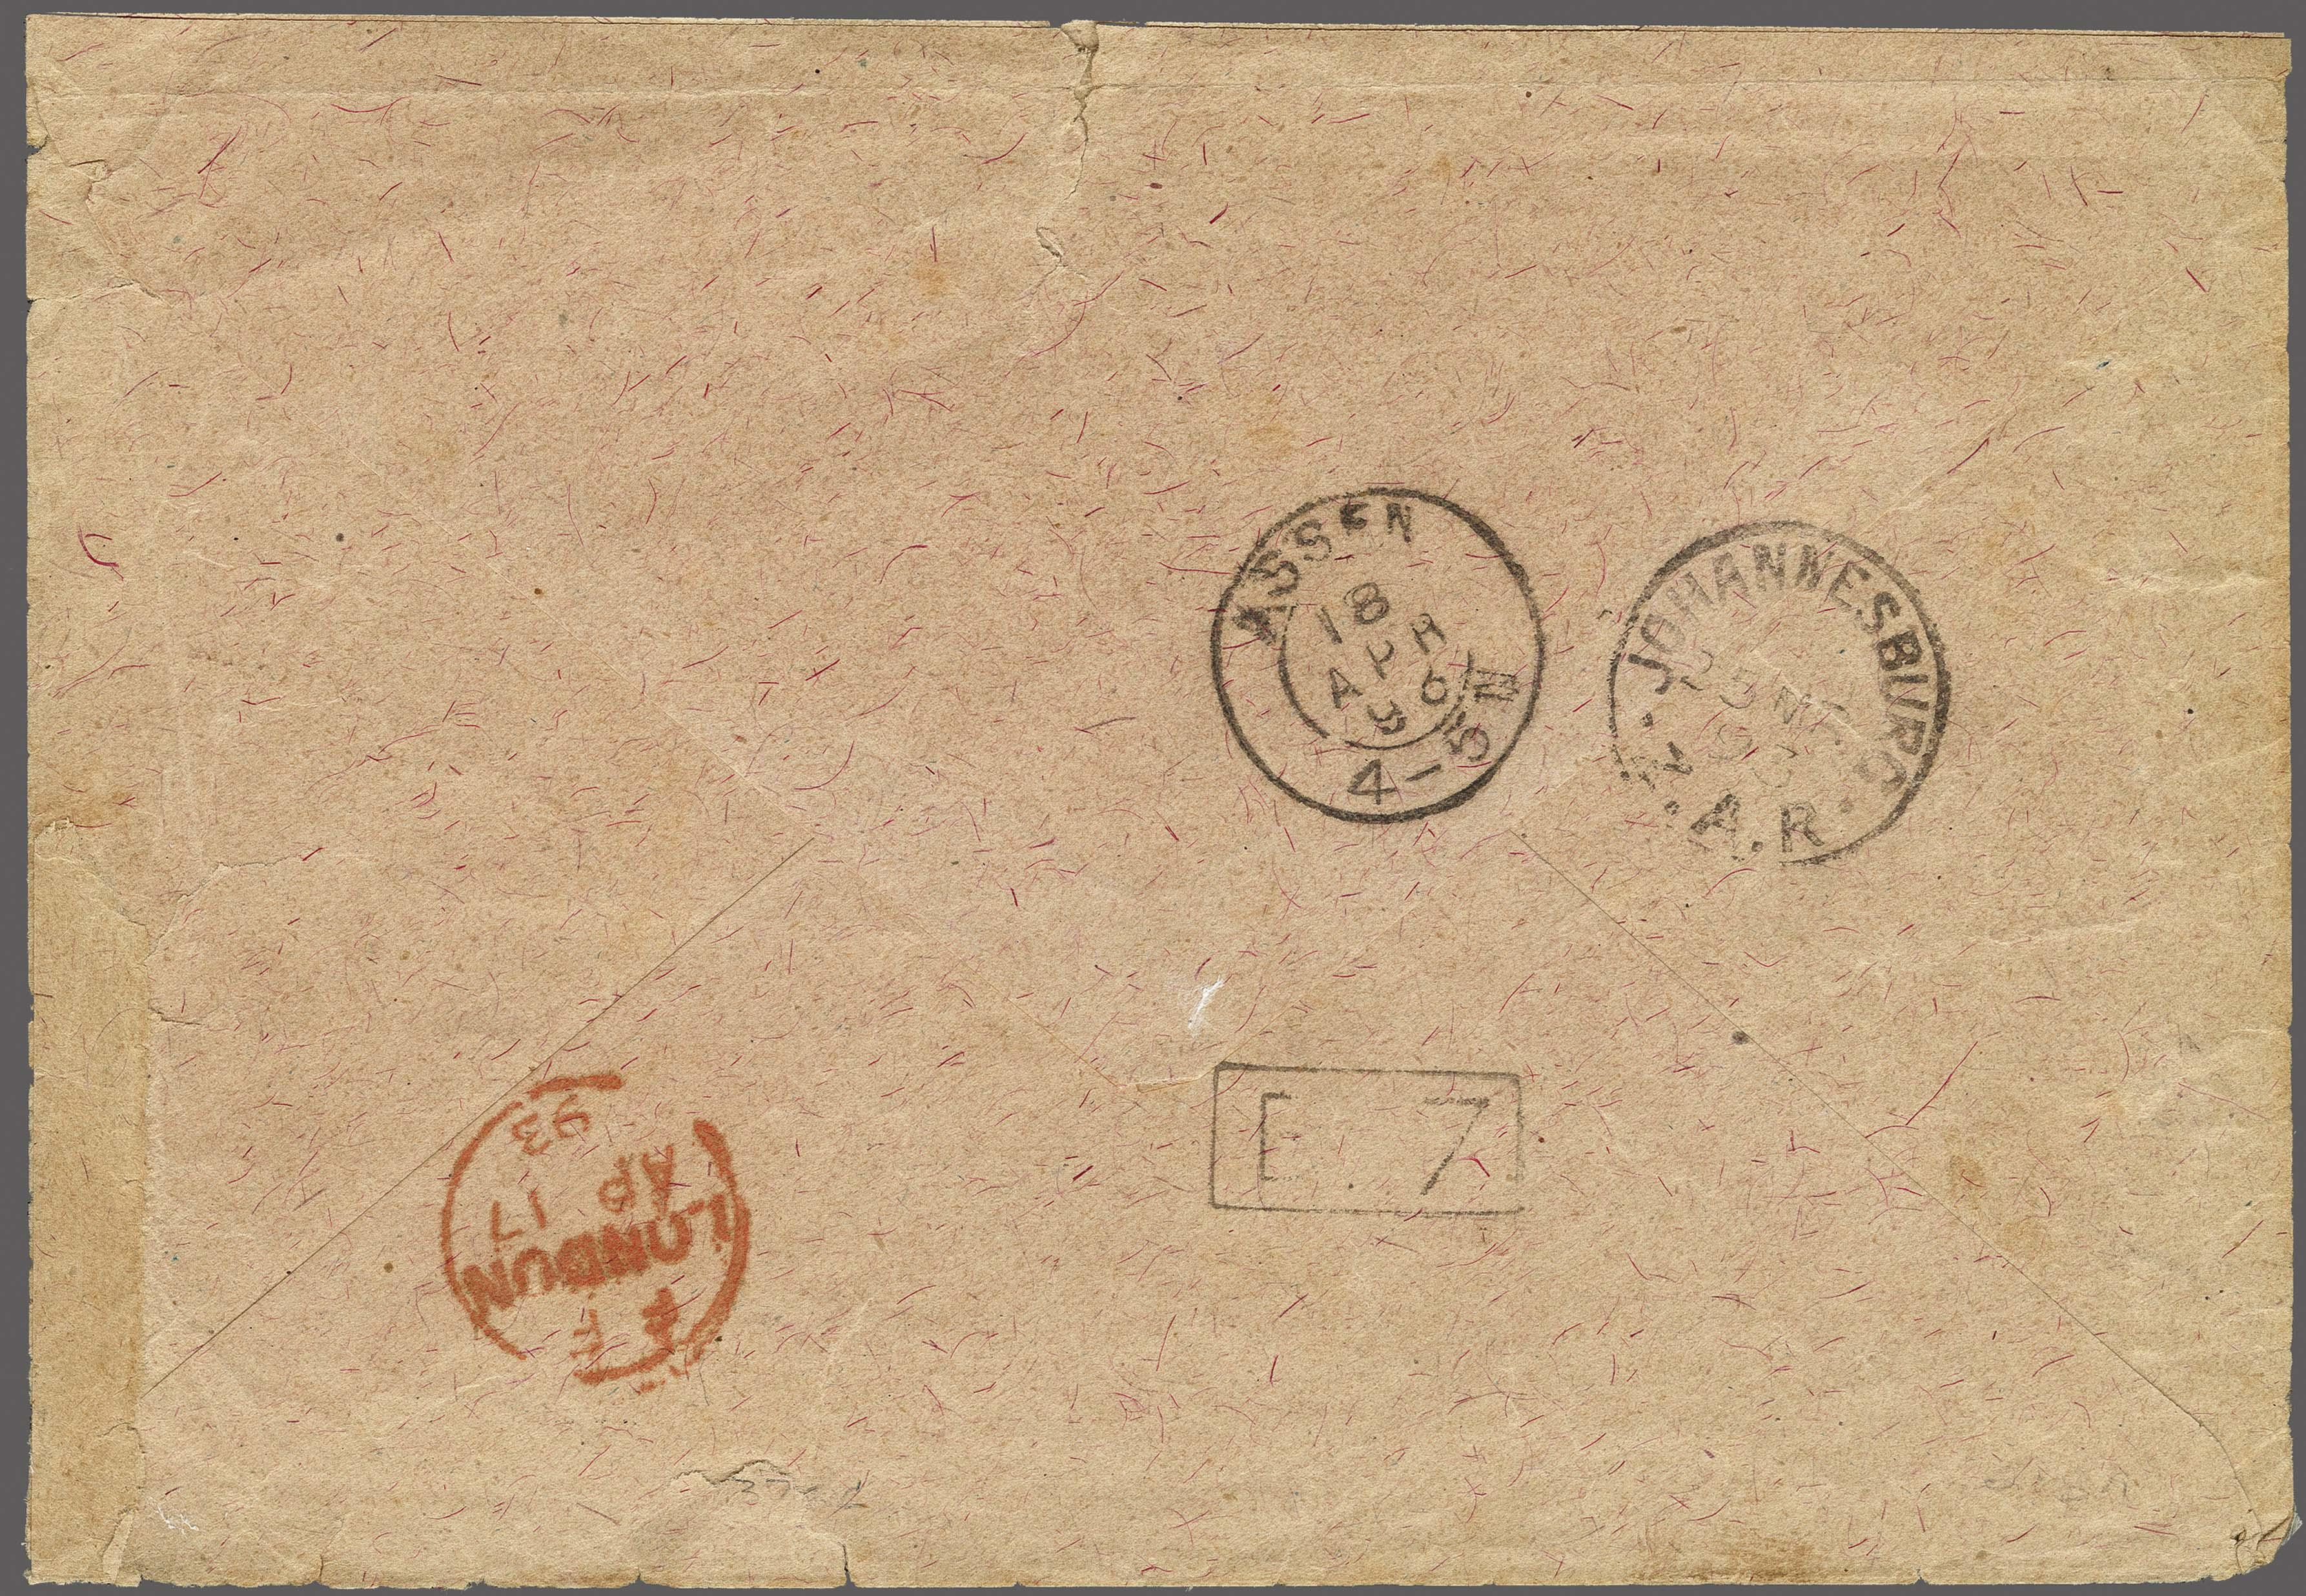 Lot 151 - Great Britain and former colonies swaziland -  Corinphila Veilingen Auction 250-253 - Day 1 - Foreign countries